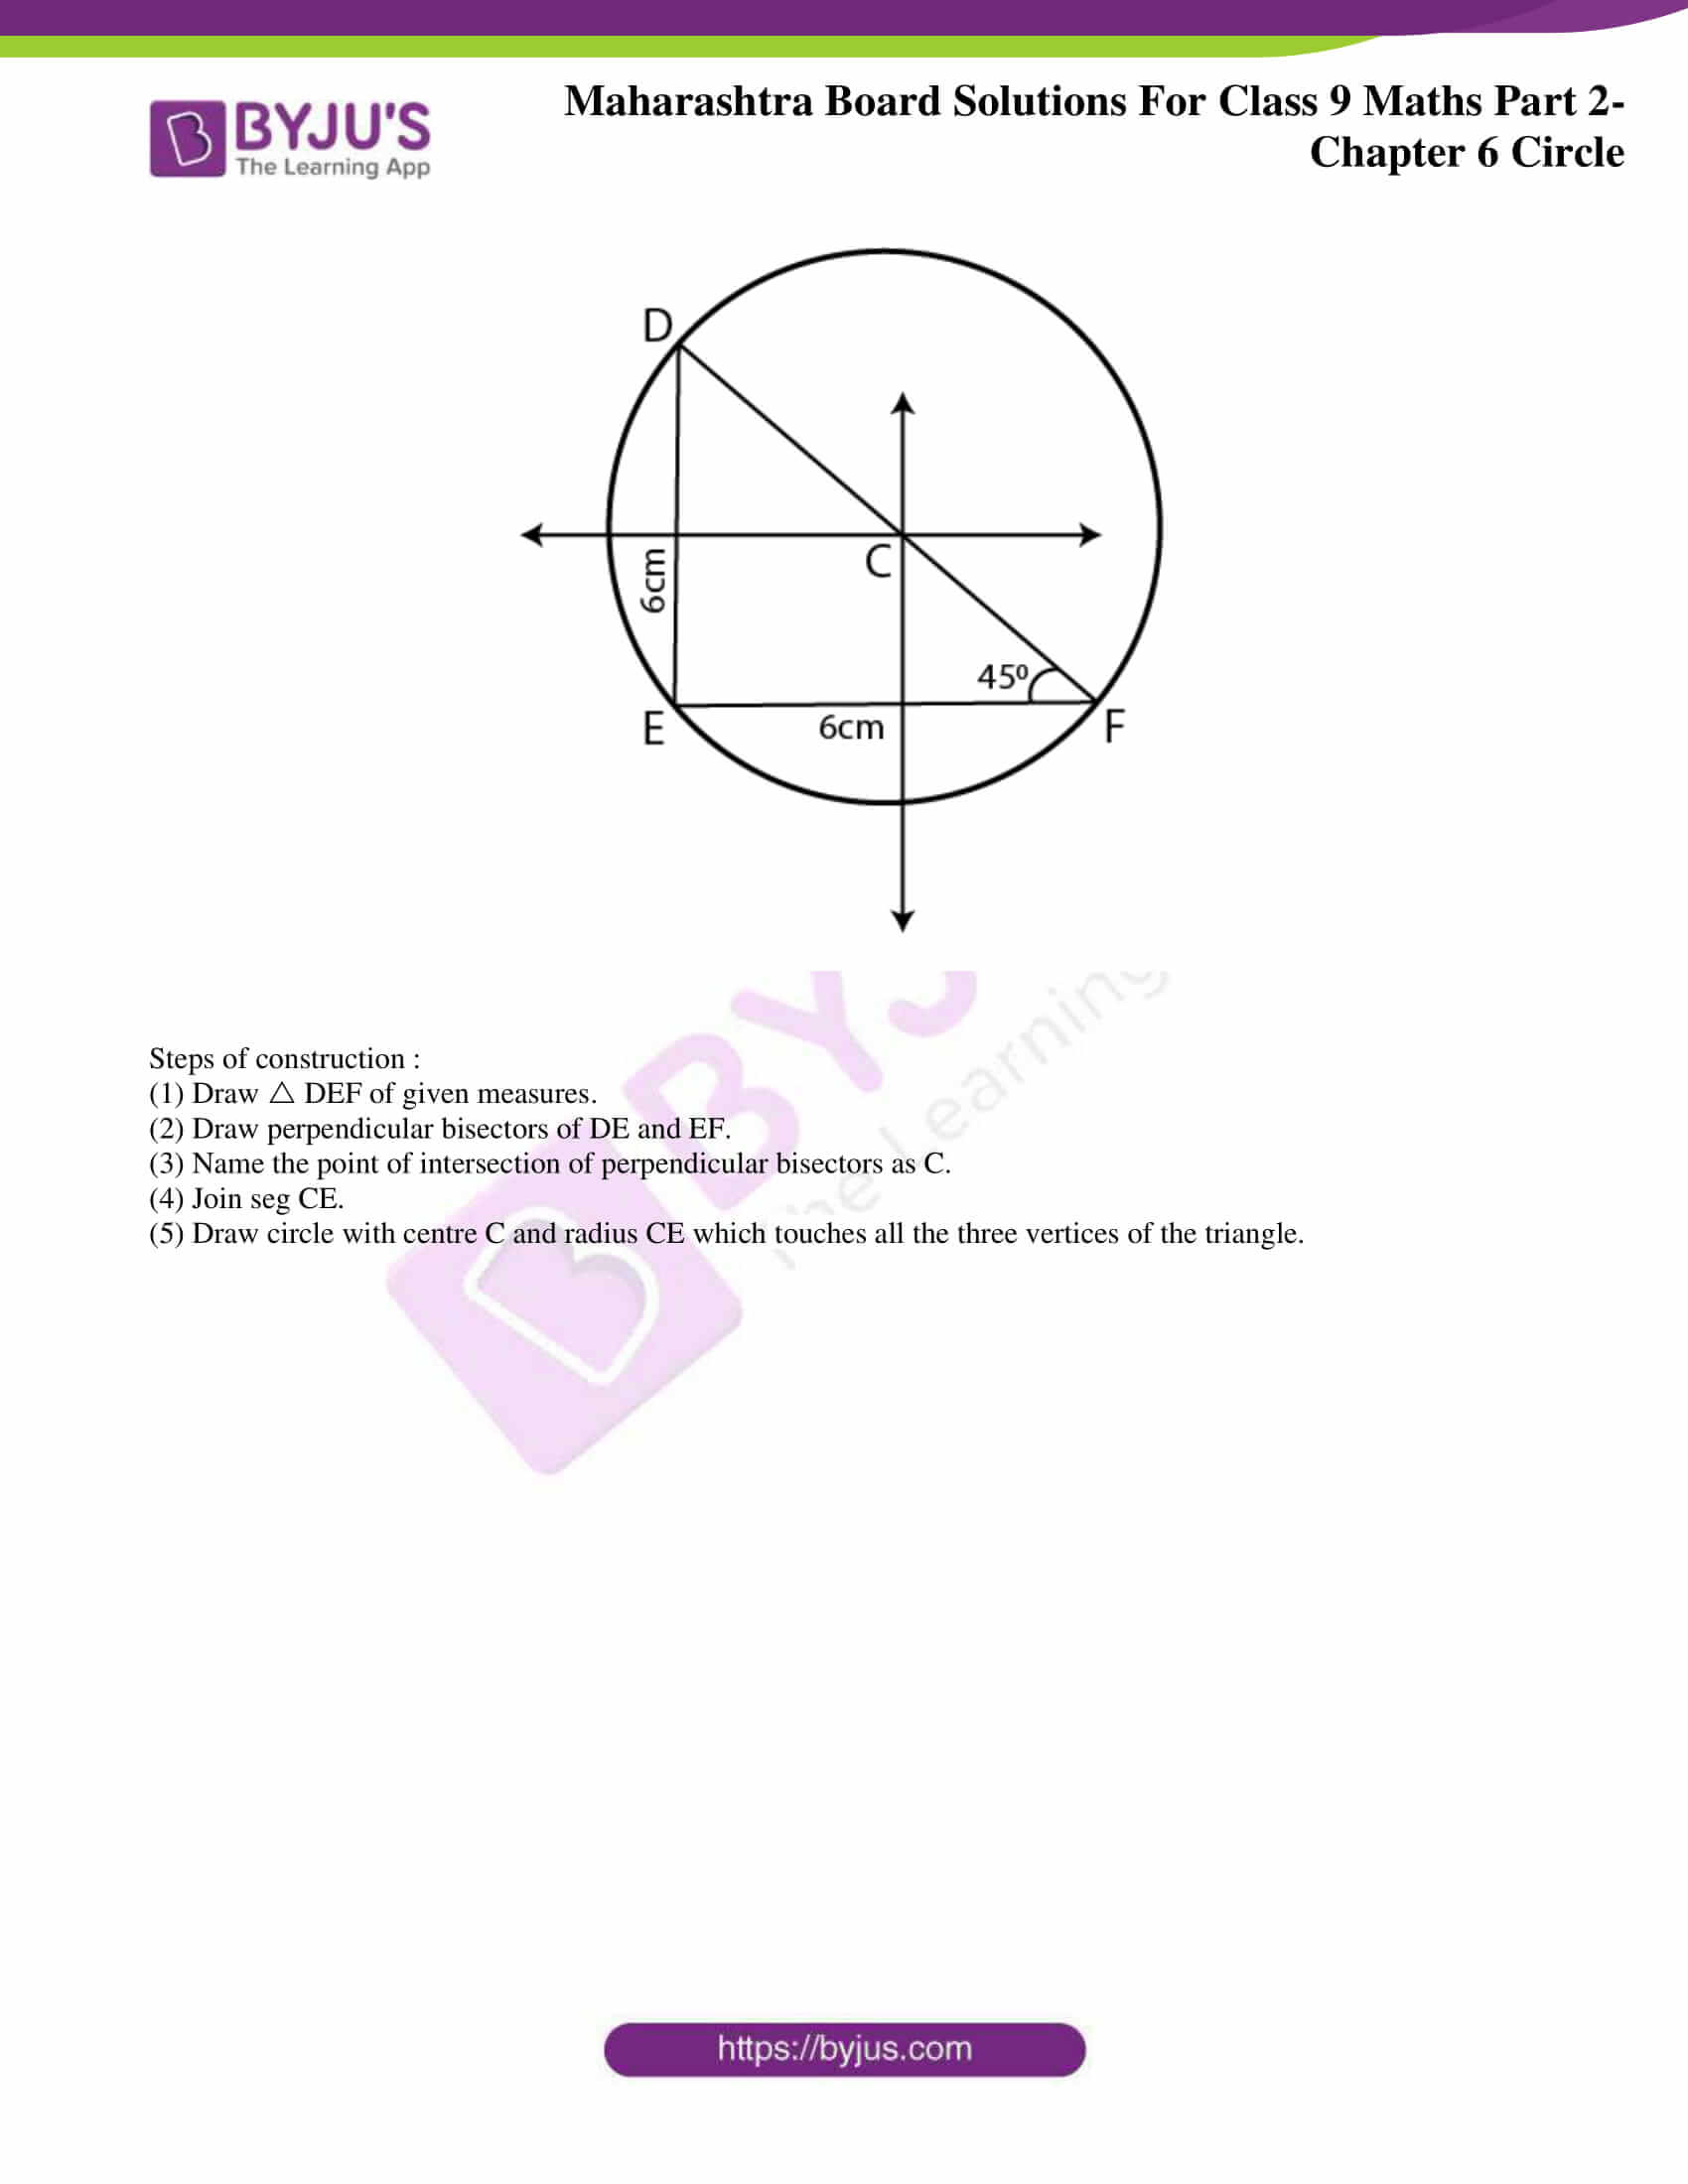 msbshse solutions for class 9 maths part 2 chapter 6 18